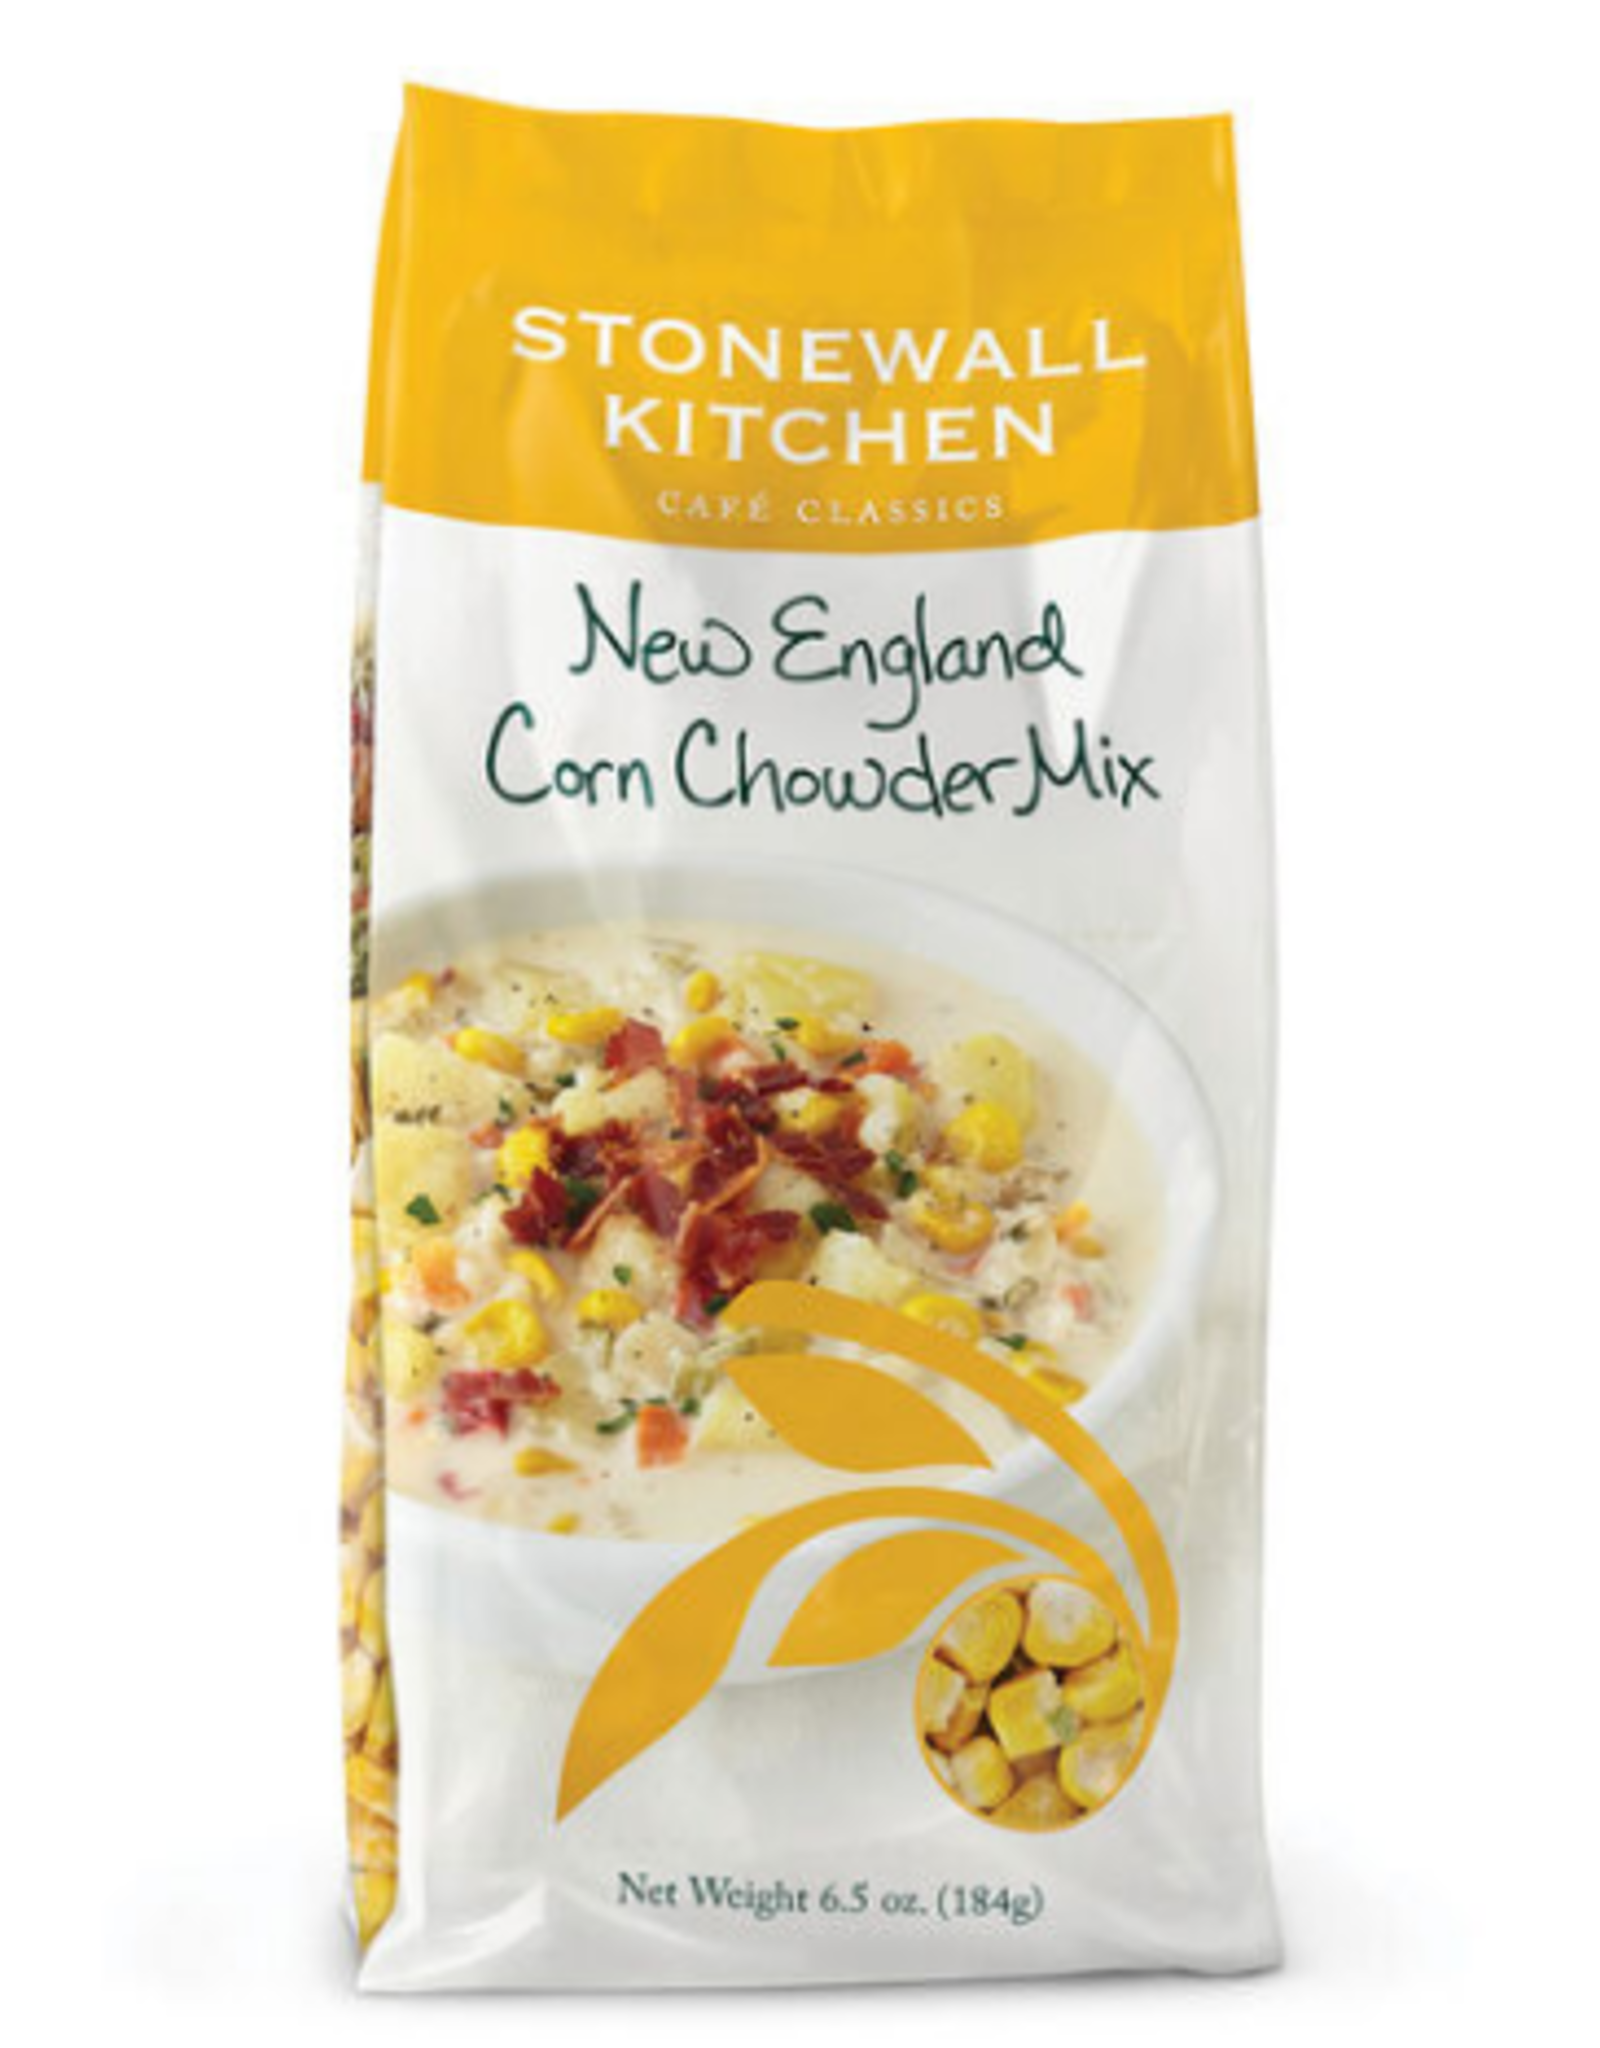 Stonewall Kitchen New England Corn Chowder